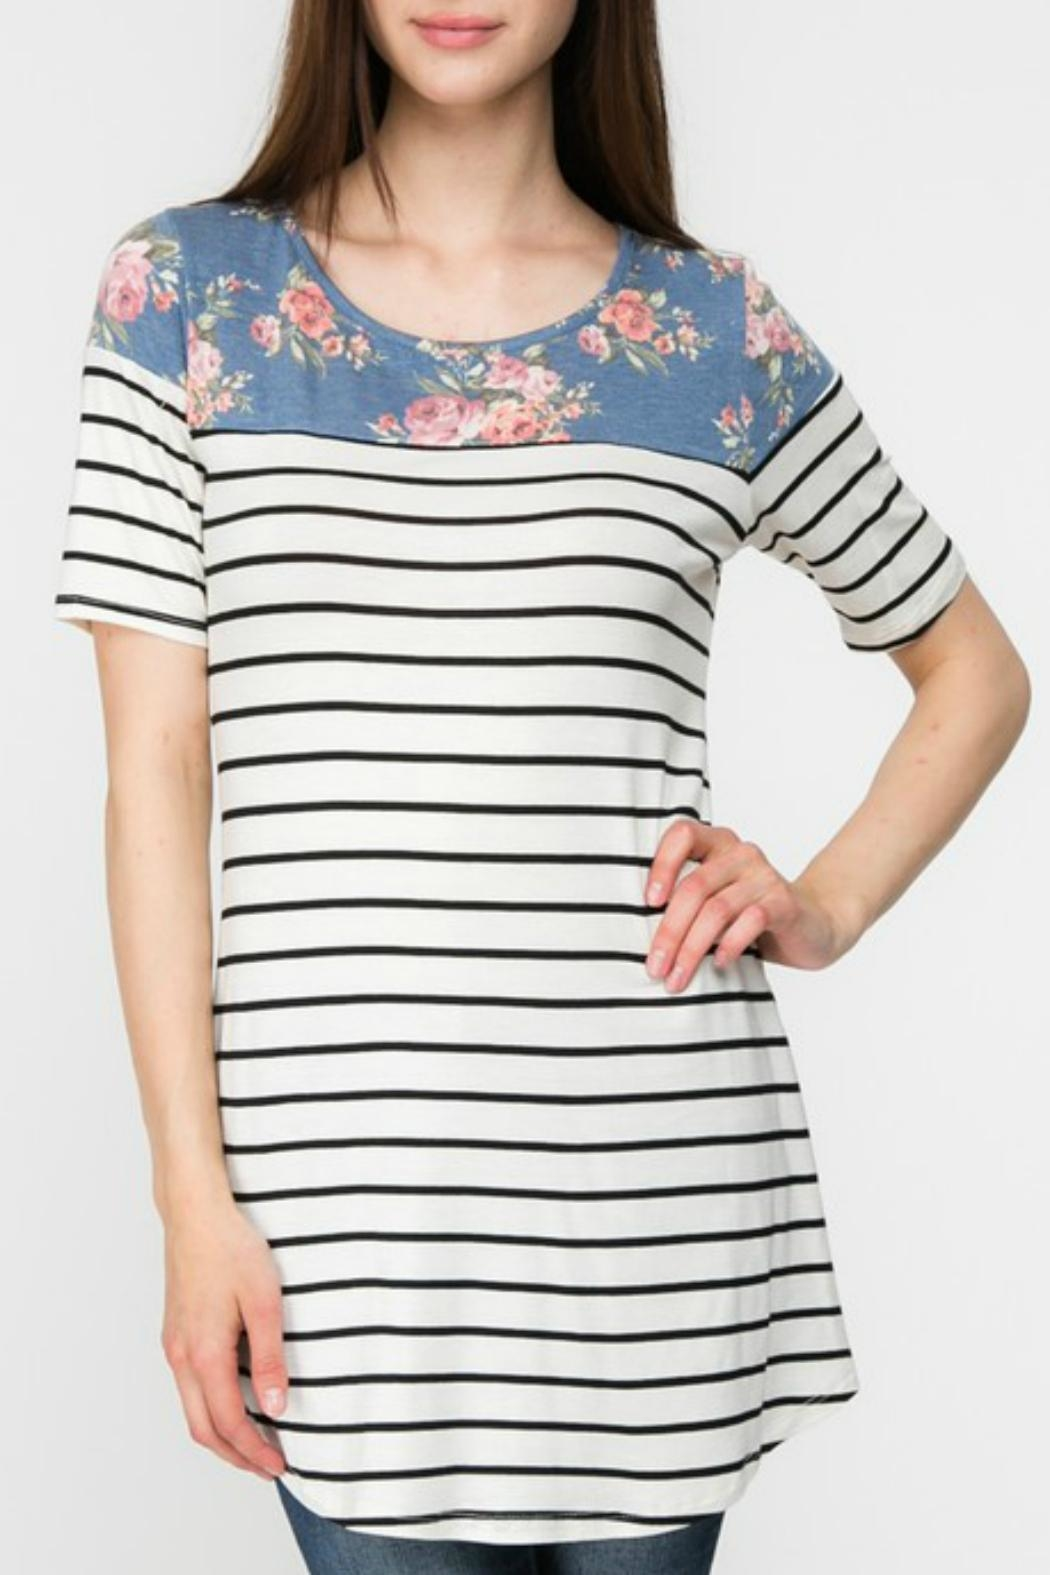 Adora Flowers-And-Stripes Long Tee - Main Image